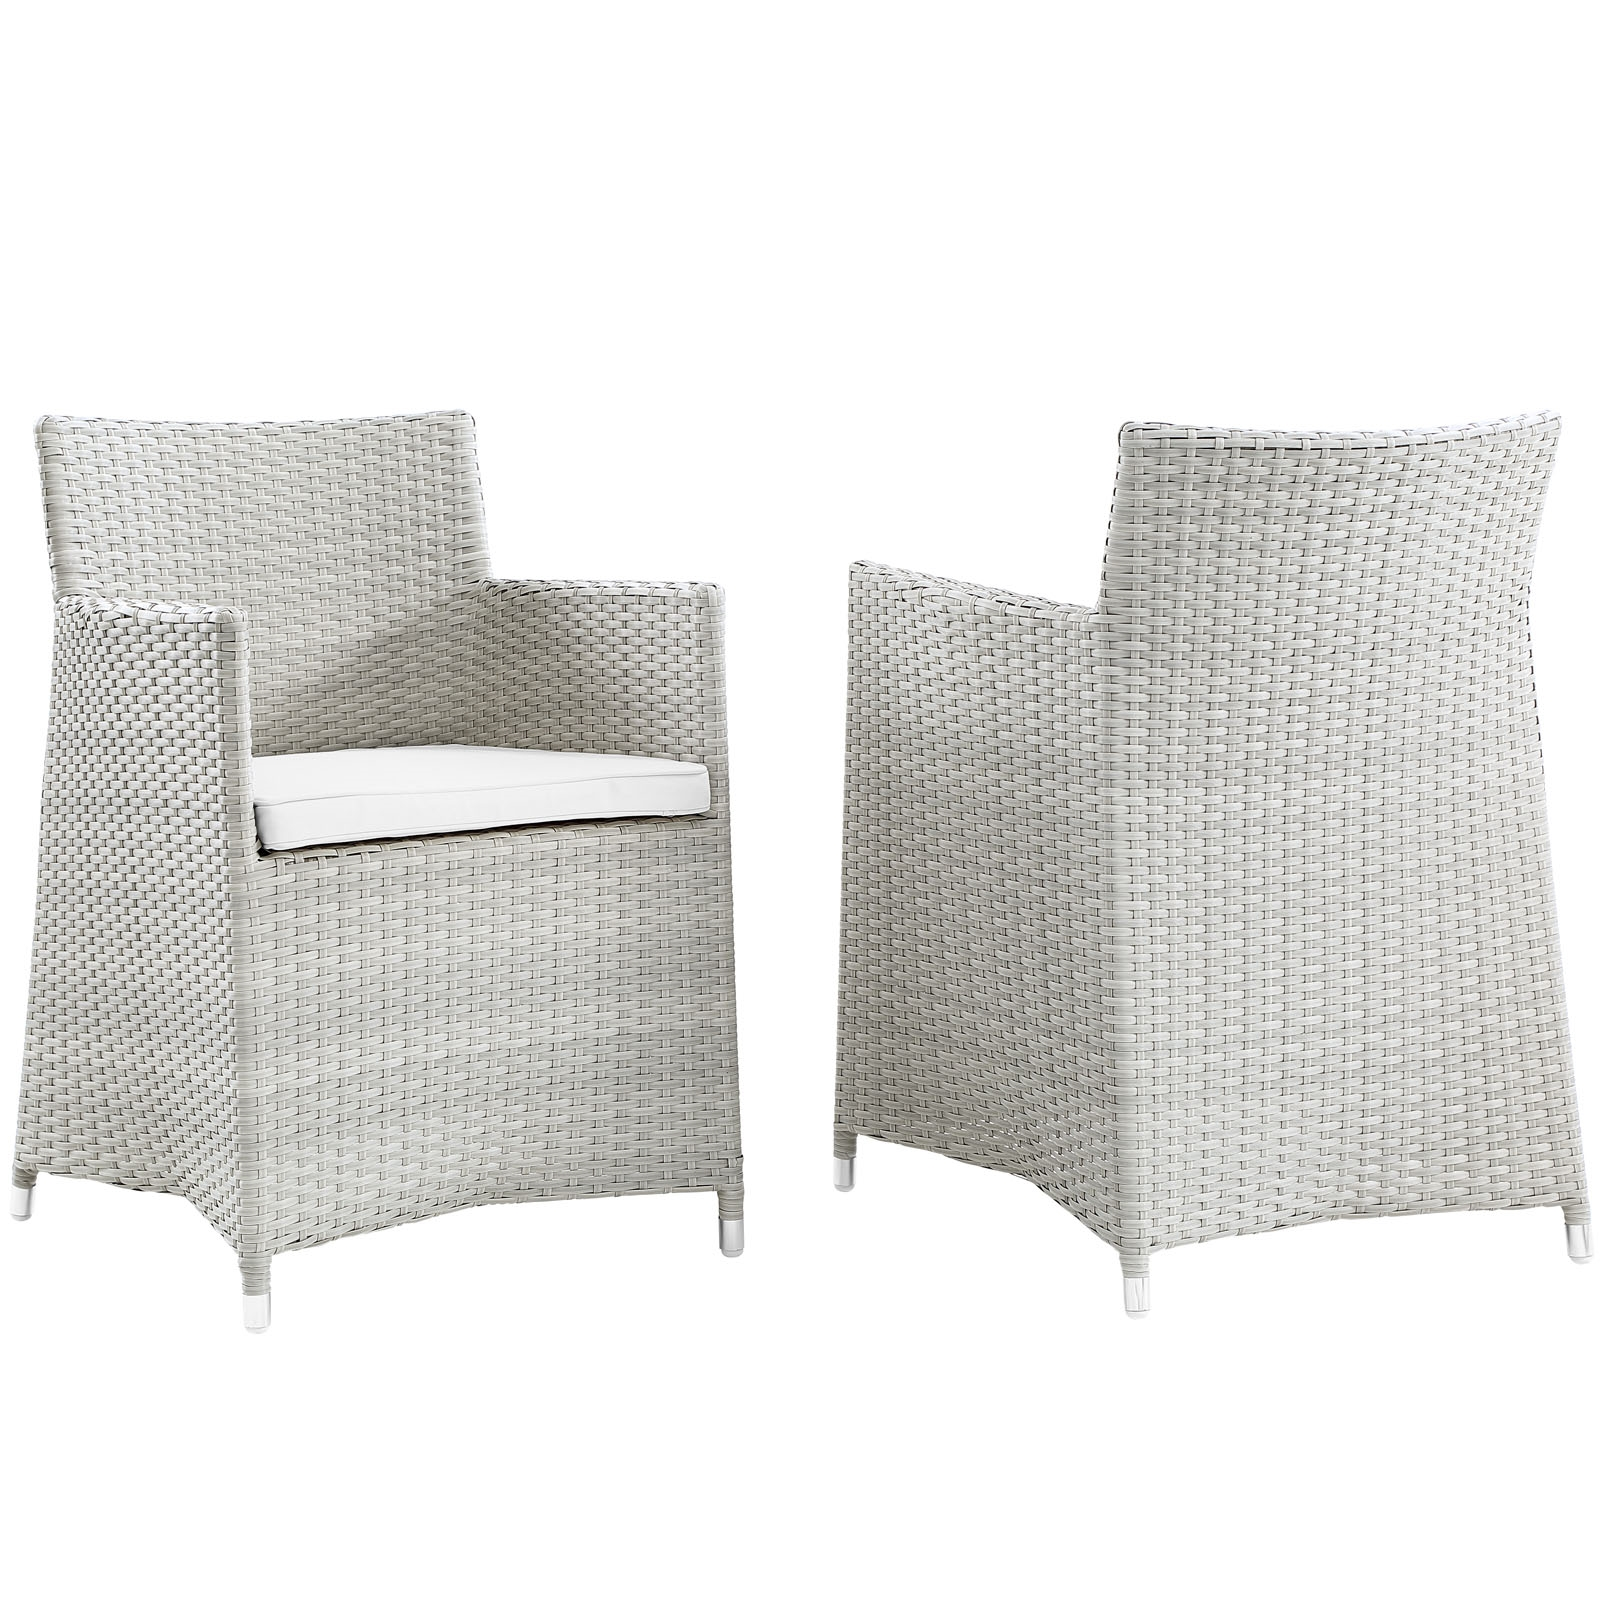 Junction Armchair Outdoor Patio Wicker Set of 2 in Gray White